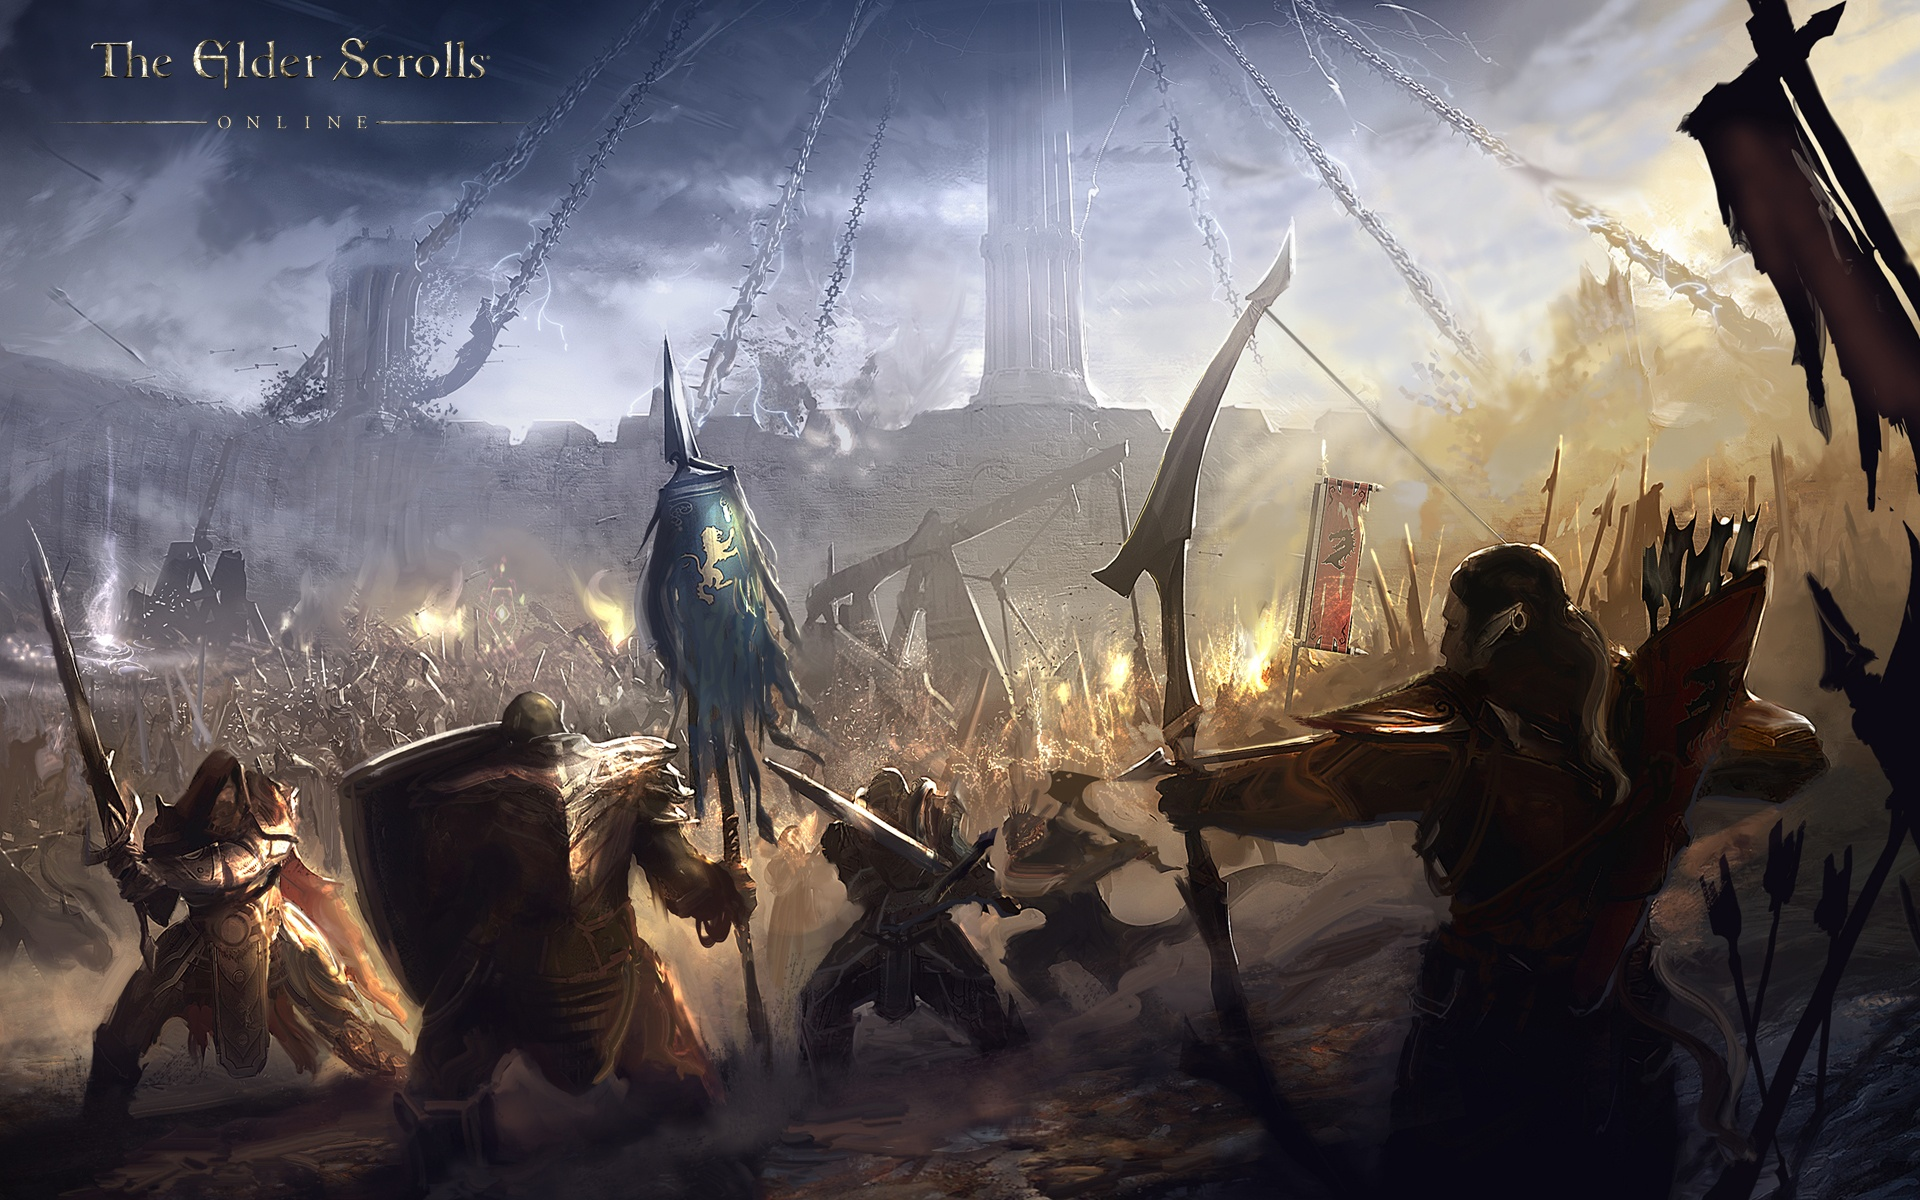 worldfungames_the-elder-scrolls-online